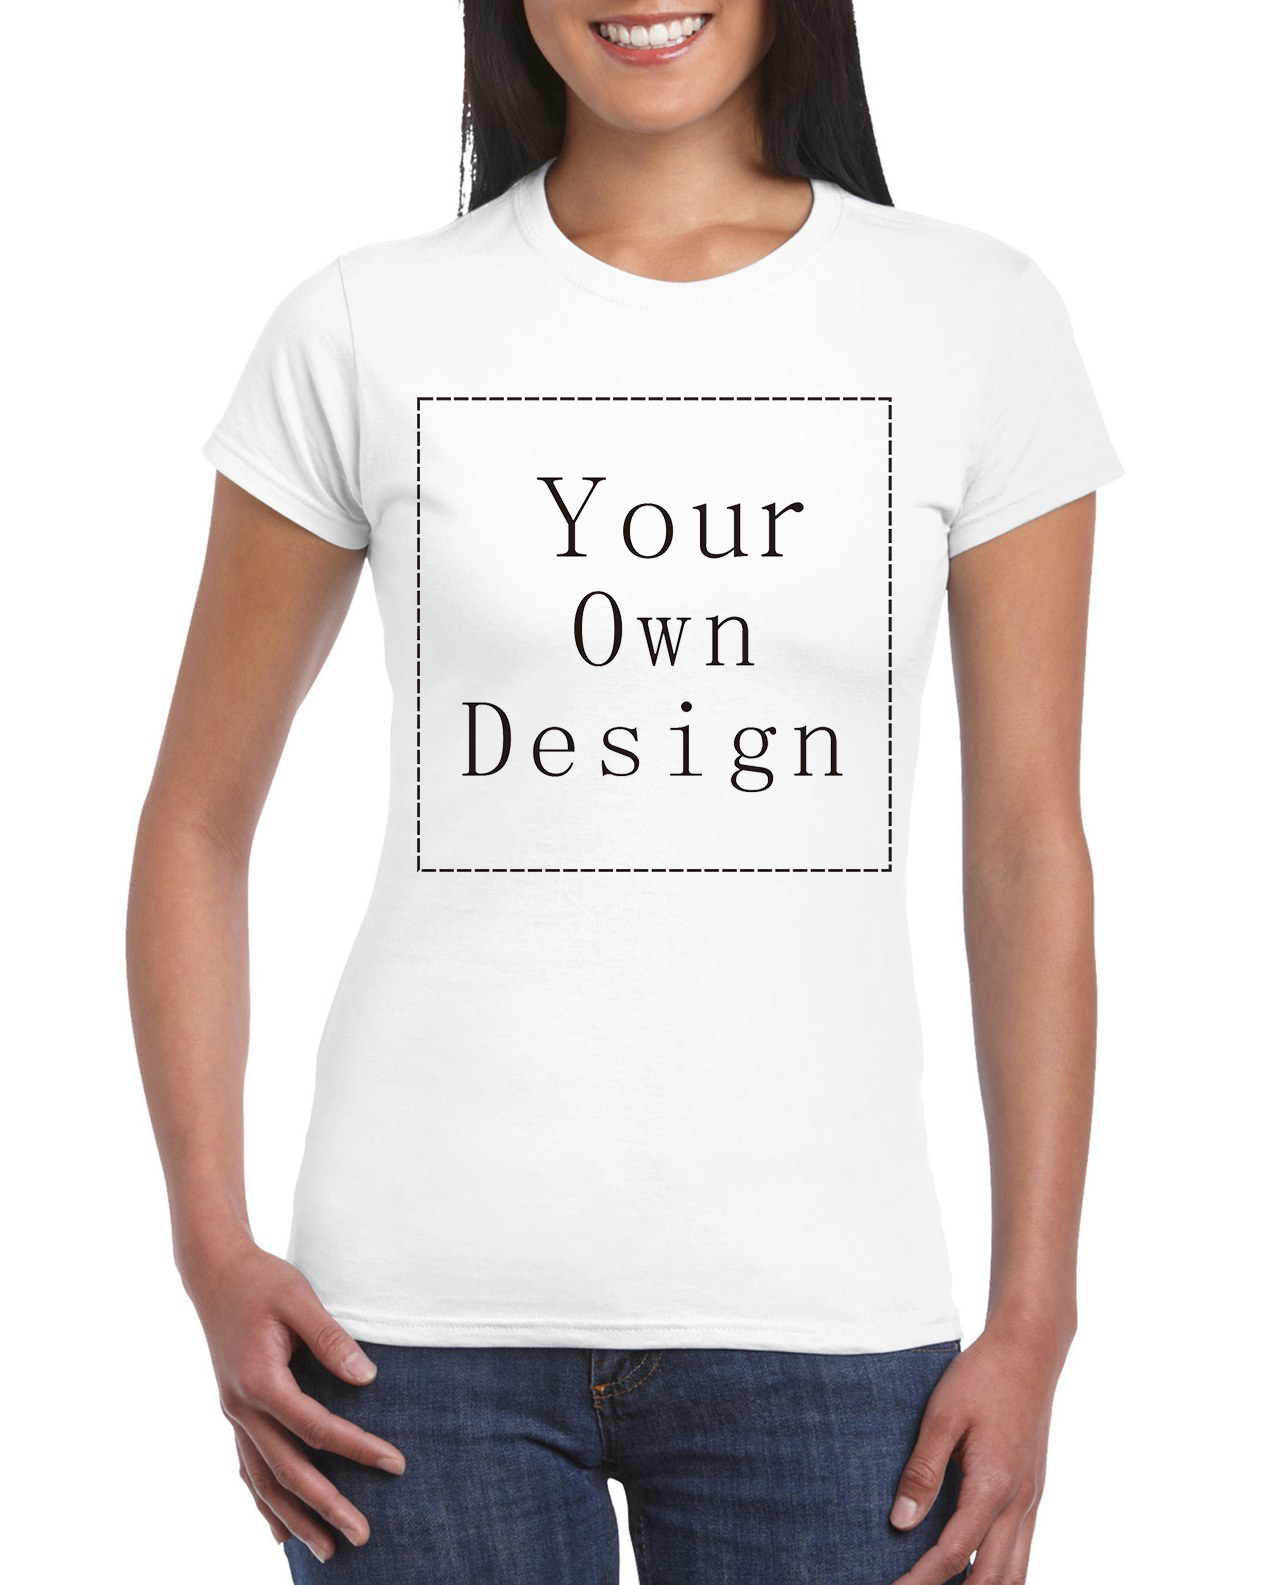 Design your own eco-friendly t-shirt - 2016 Women Your Own Design T Shirt Novelty Tops Lady Custom Printed Short Sleeve Tees